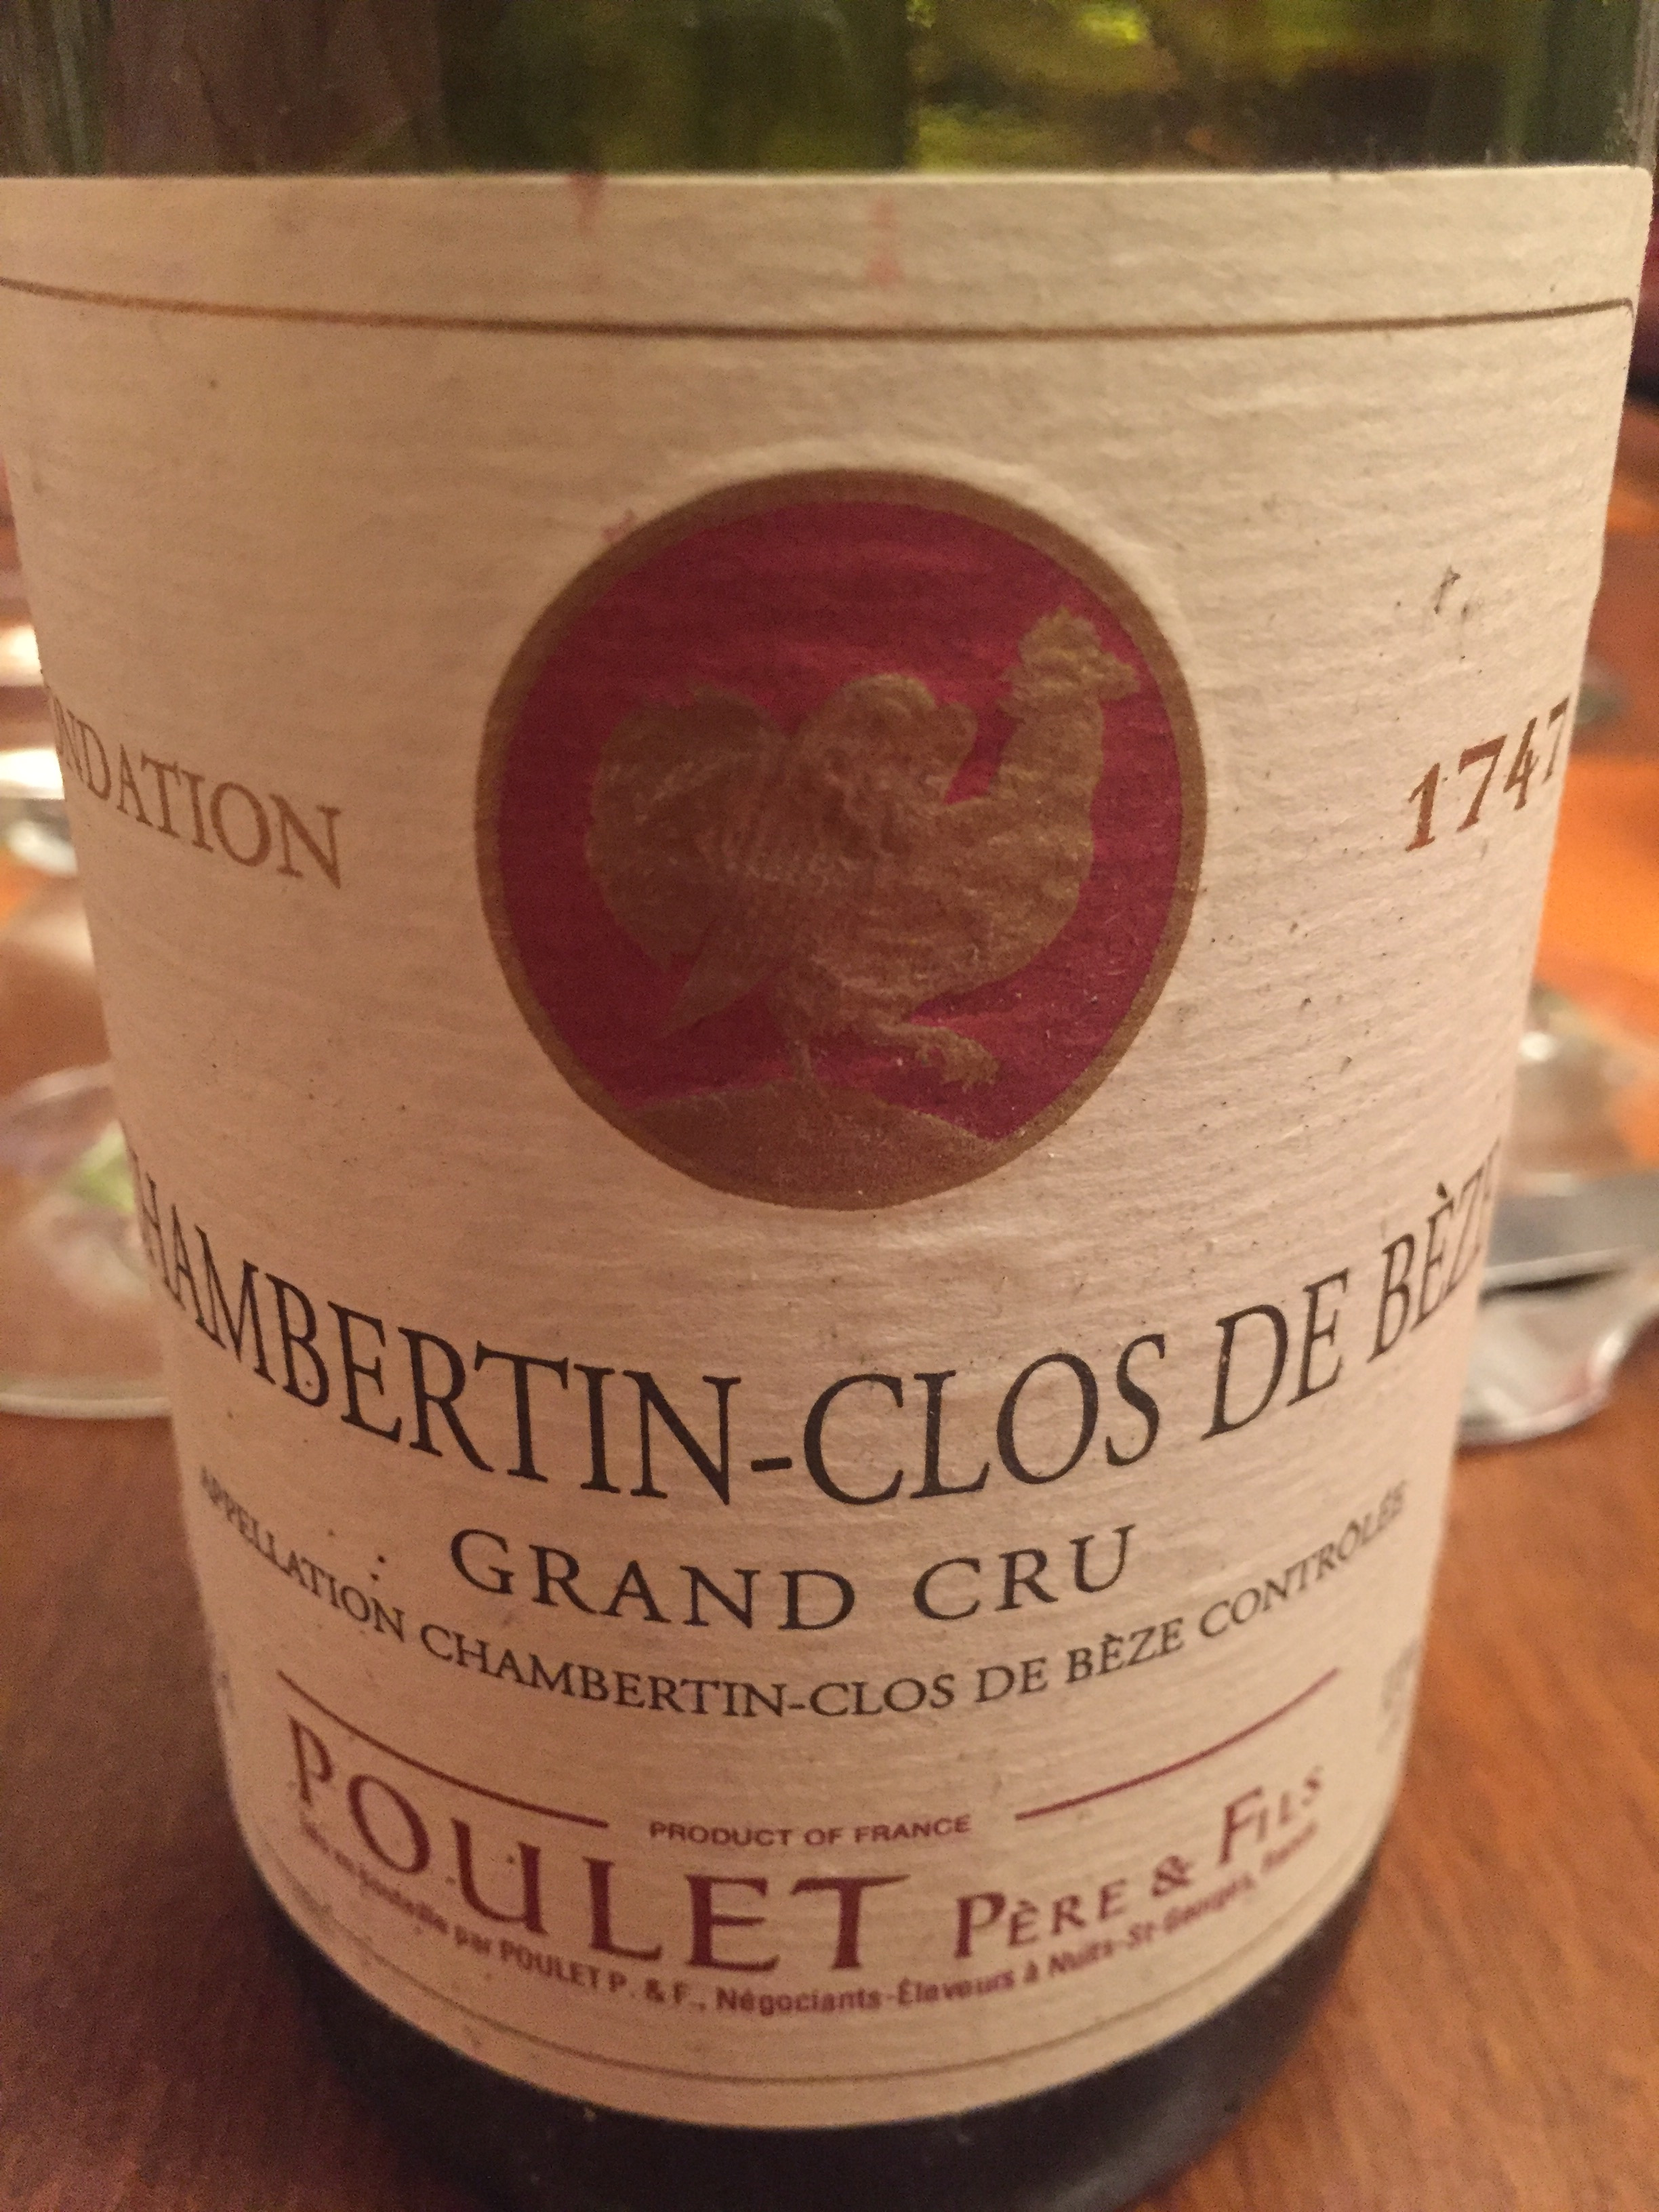 A ridiculously youthful  1990 Clos de Bèze  from Poulet...